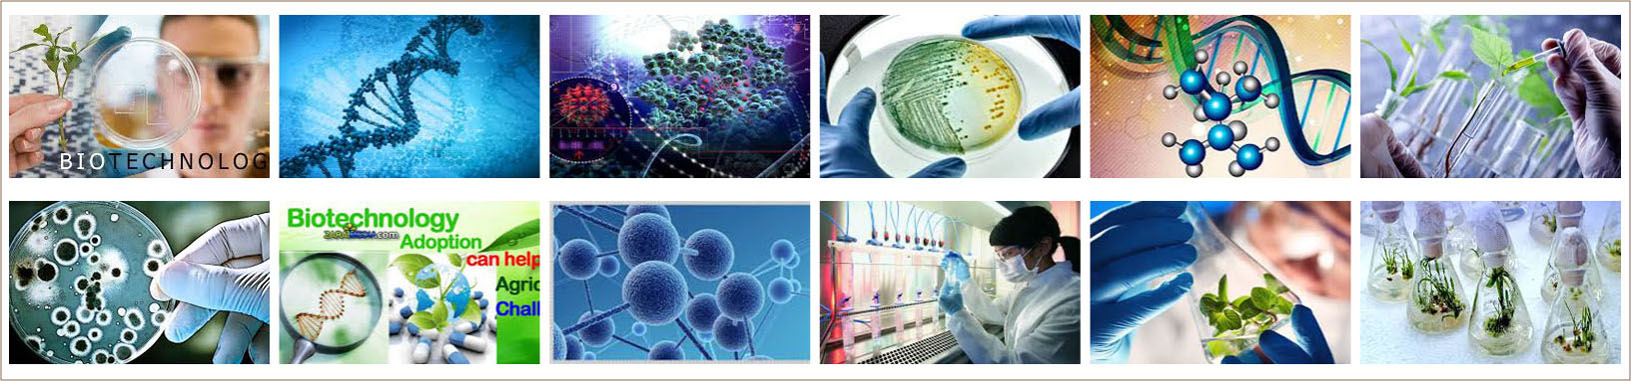 Biotechnology, Nanotechnology and Medical Electronics